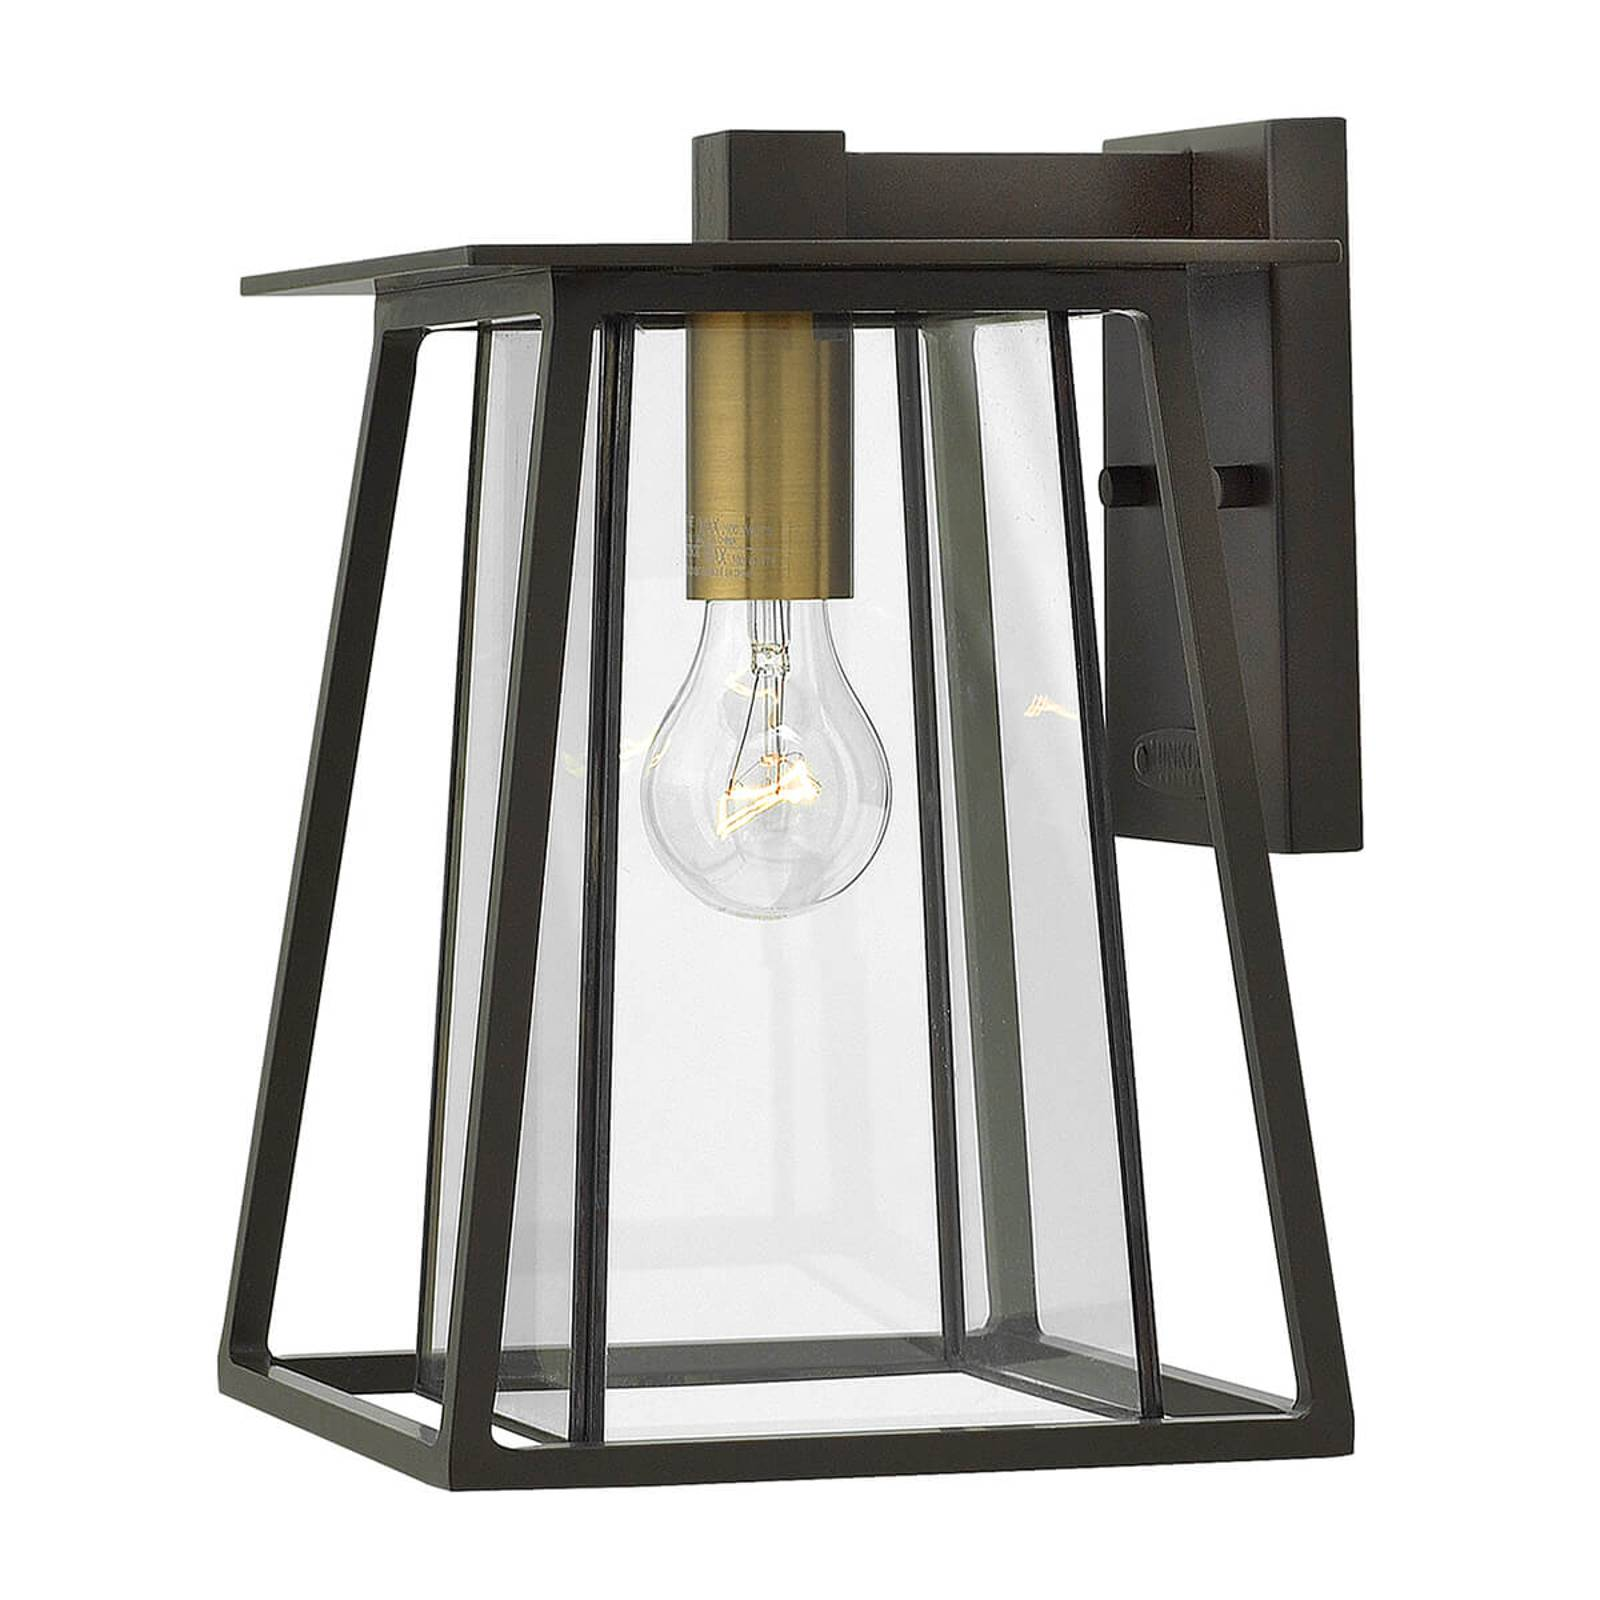 Medium-sized Walker outdoor wall light one-bulb from HINKLEY